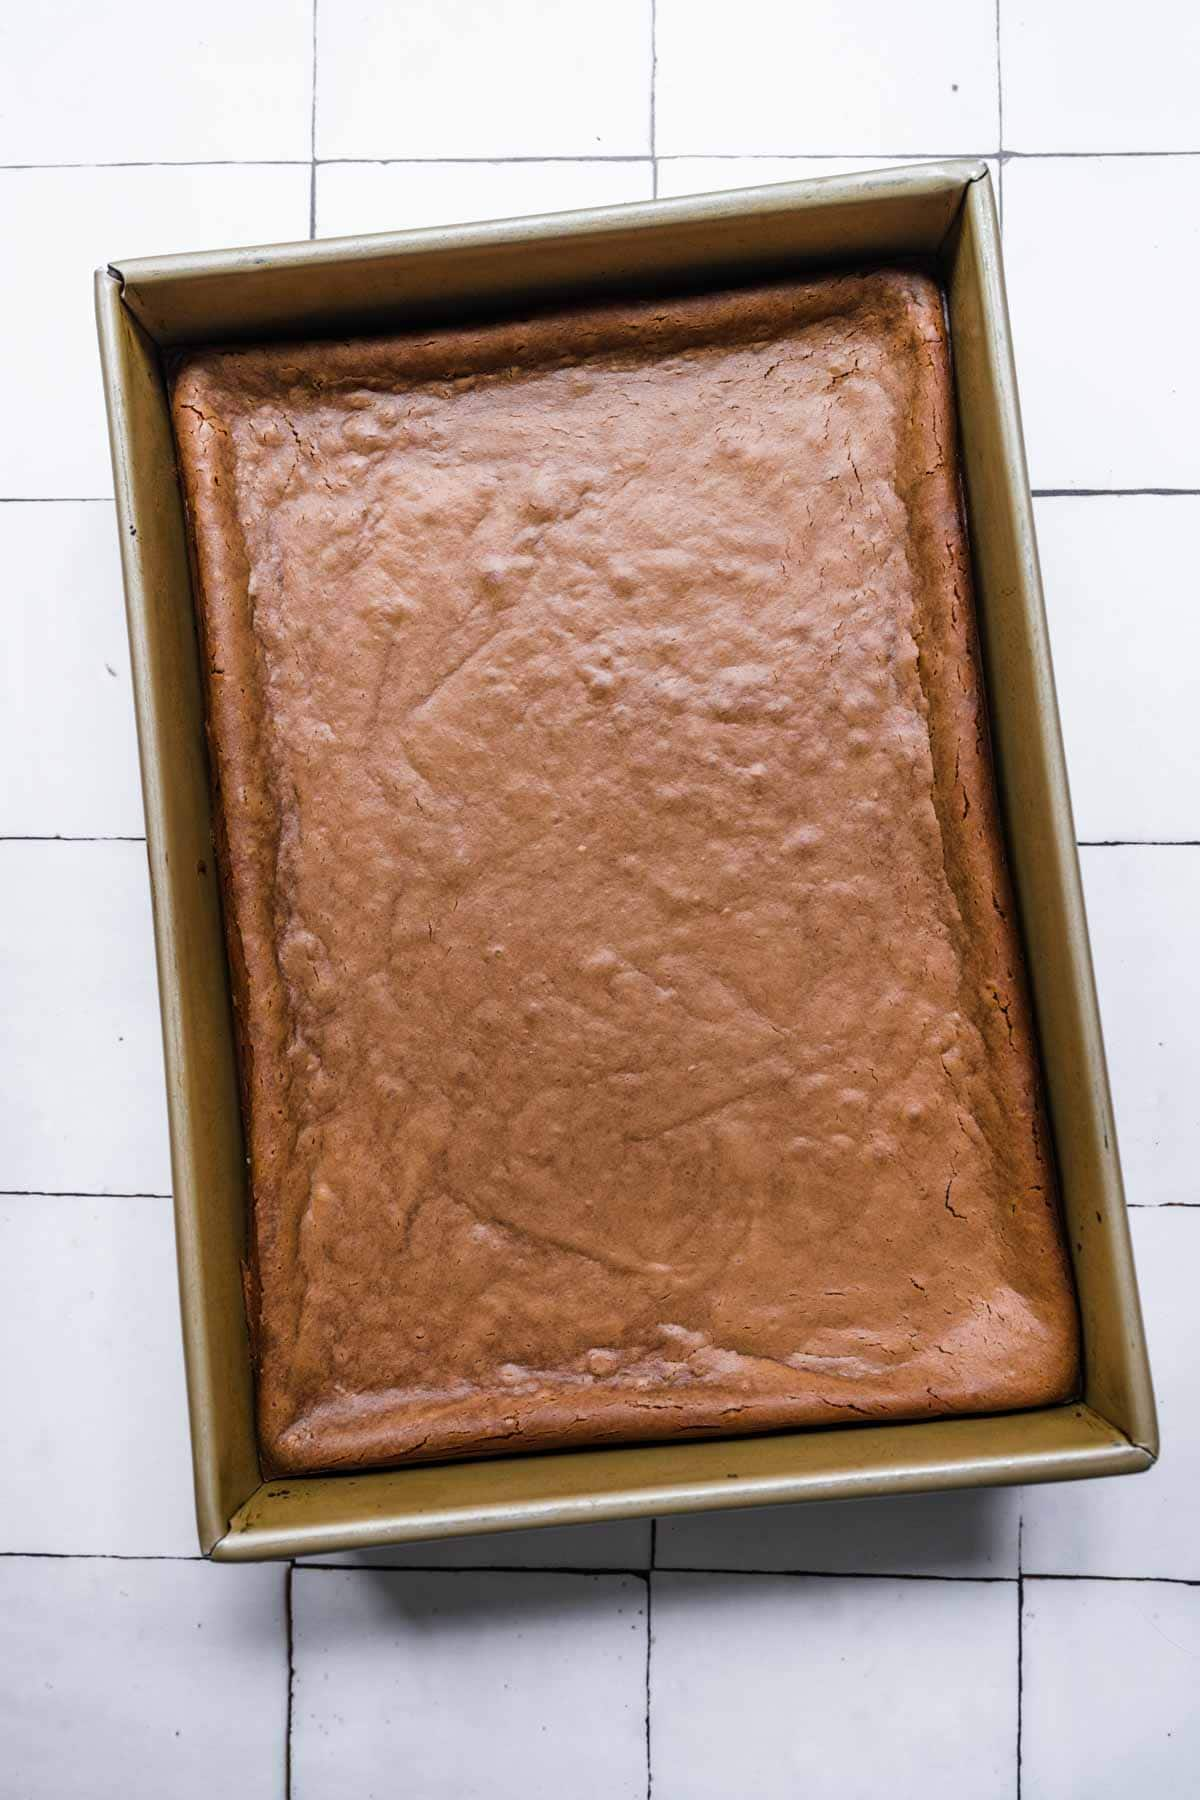 Chocolate Cheesecake Bars in baking dish after baking